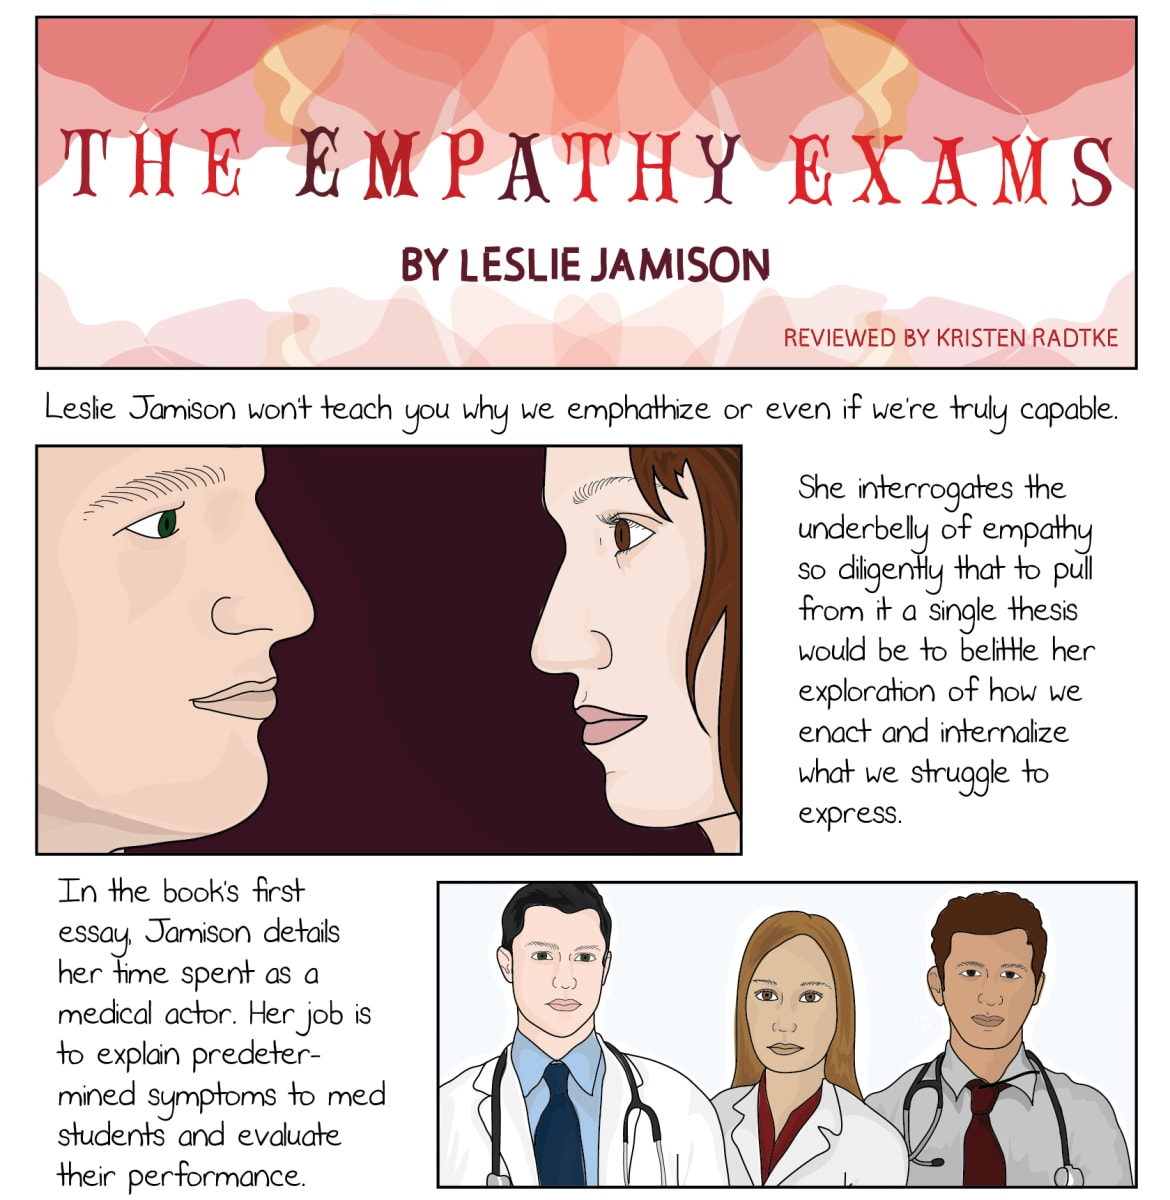 graphic novelist kristen radtke reviews leslie jamison s essays she is the marketing and publicity director for sarabande books and is at work on a graphic memoir about modern ruins and abandoned places